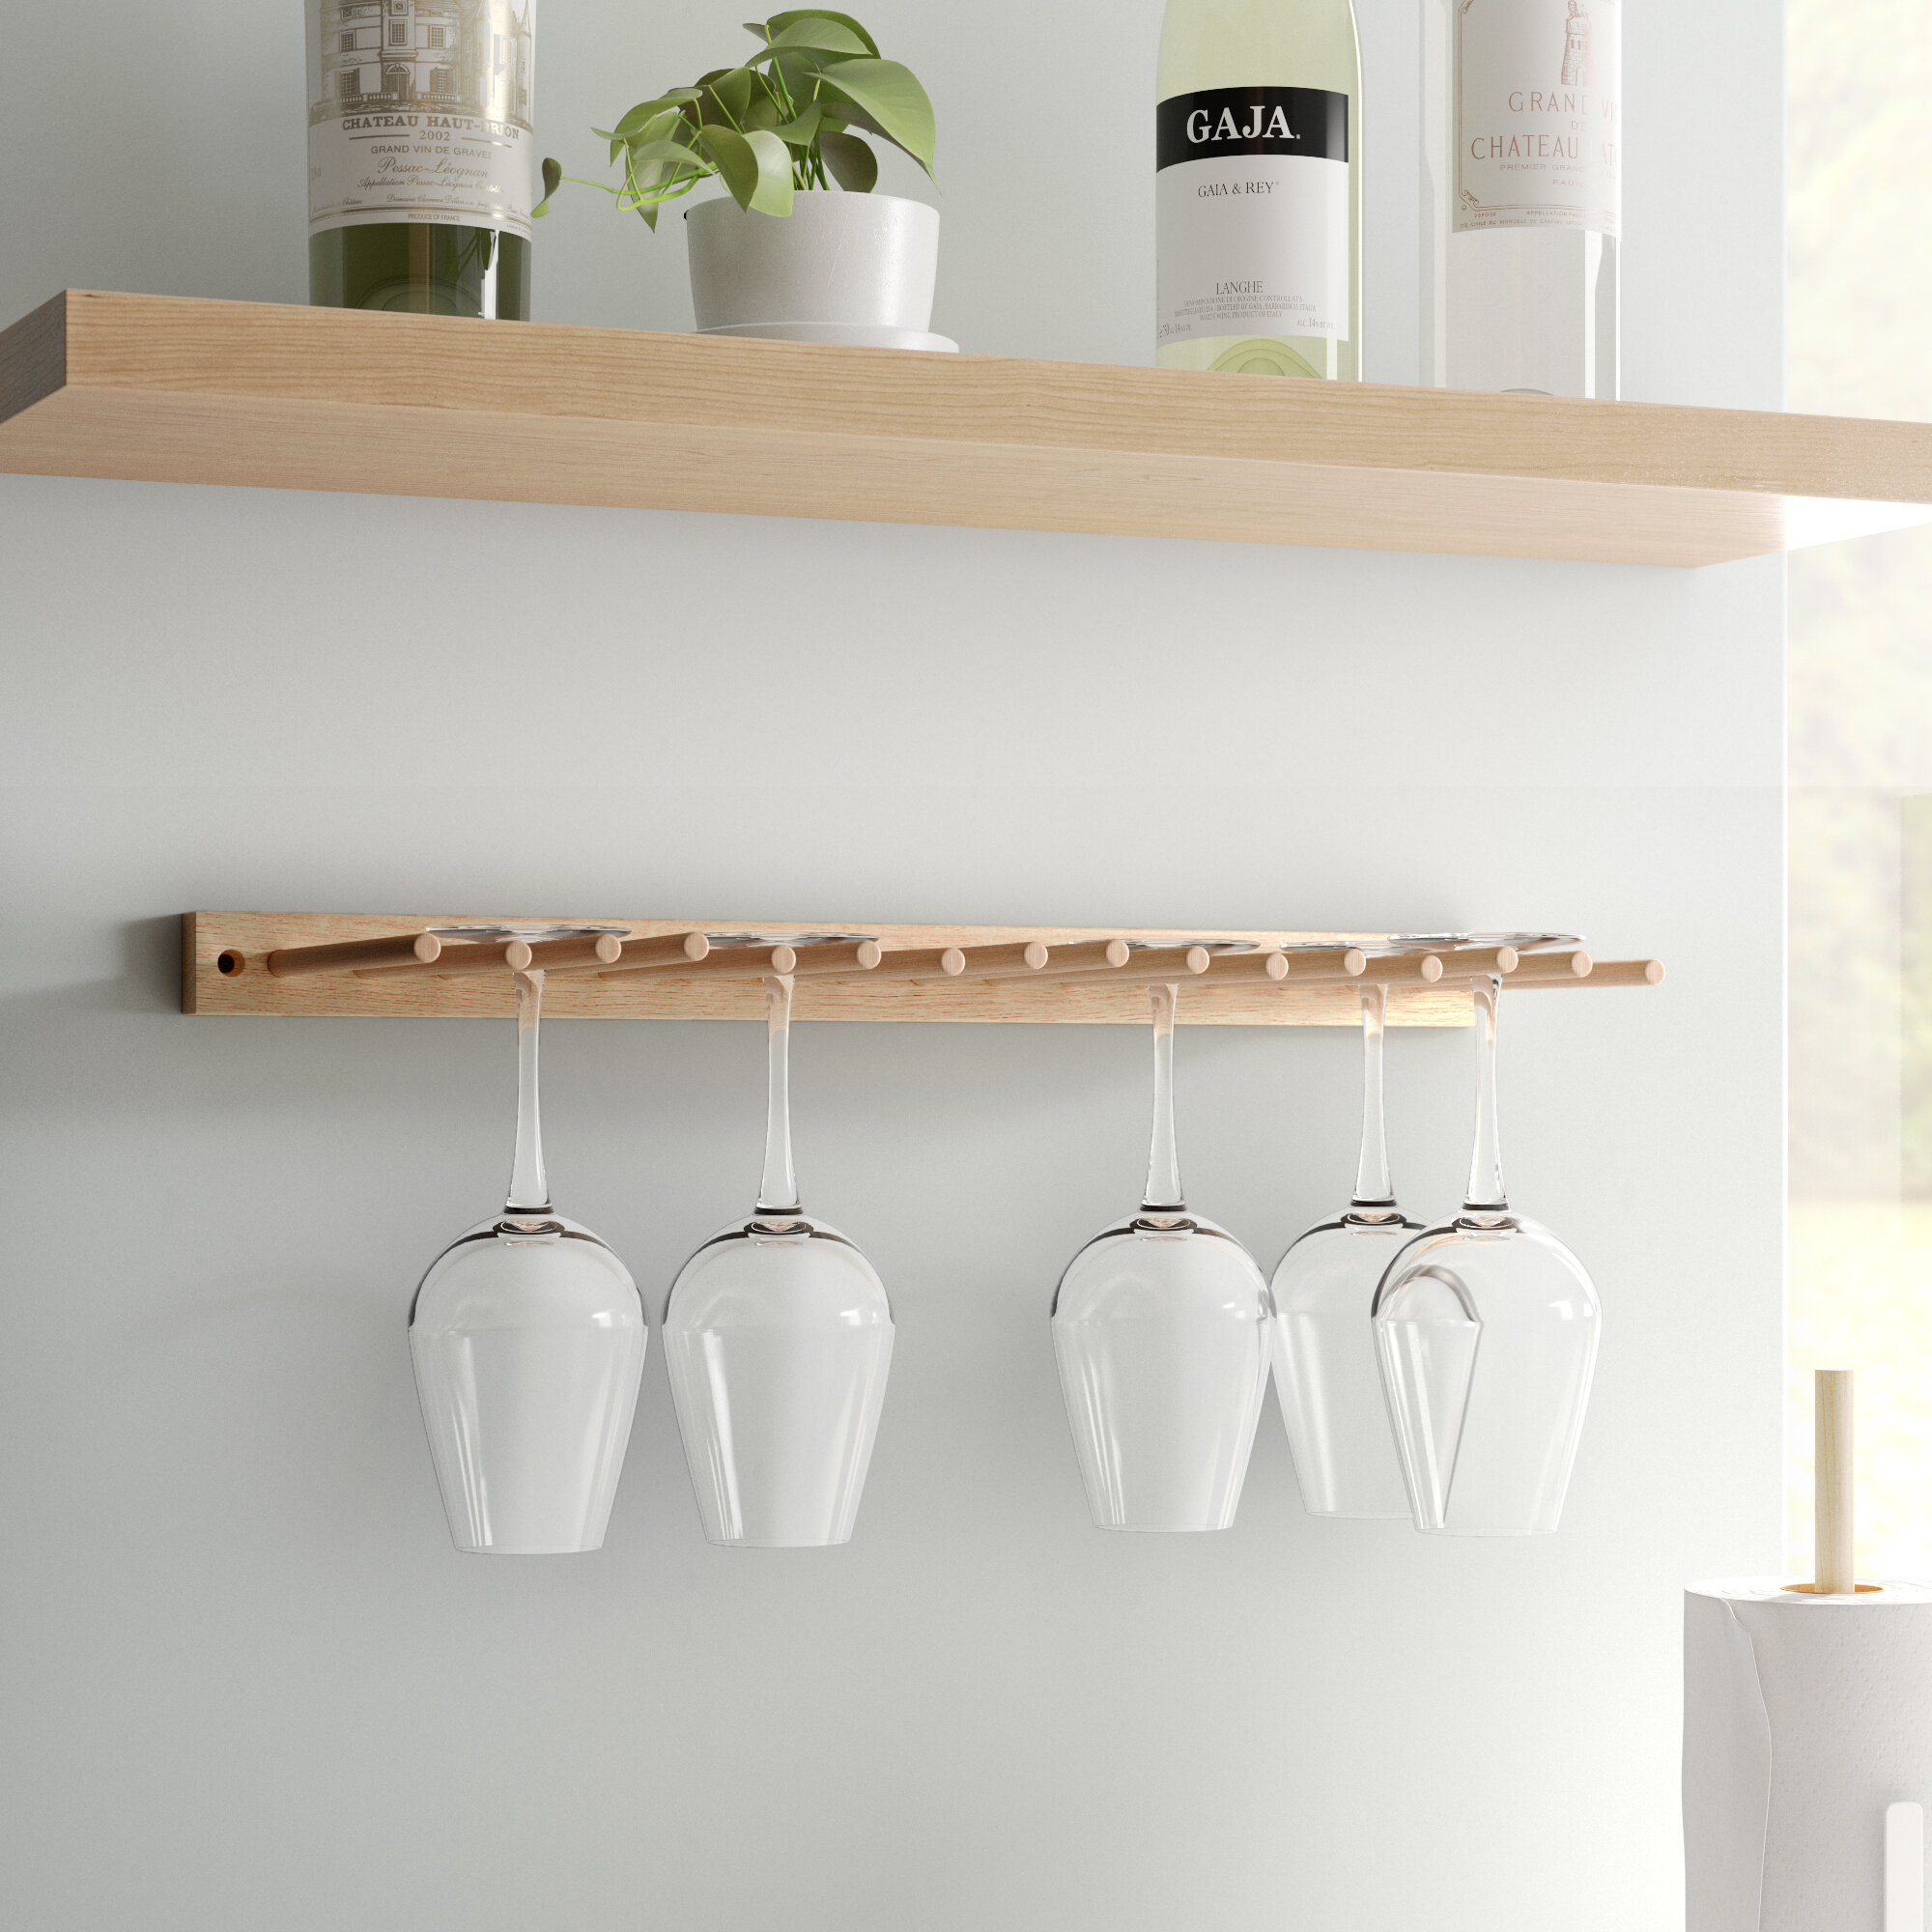 Dotted Line Emilia Solid Wood Wall Mounted Wine Glass Rack In Natural Reviews